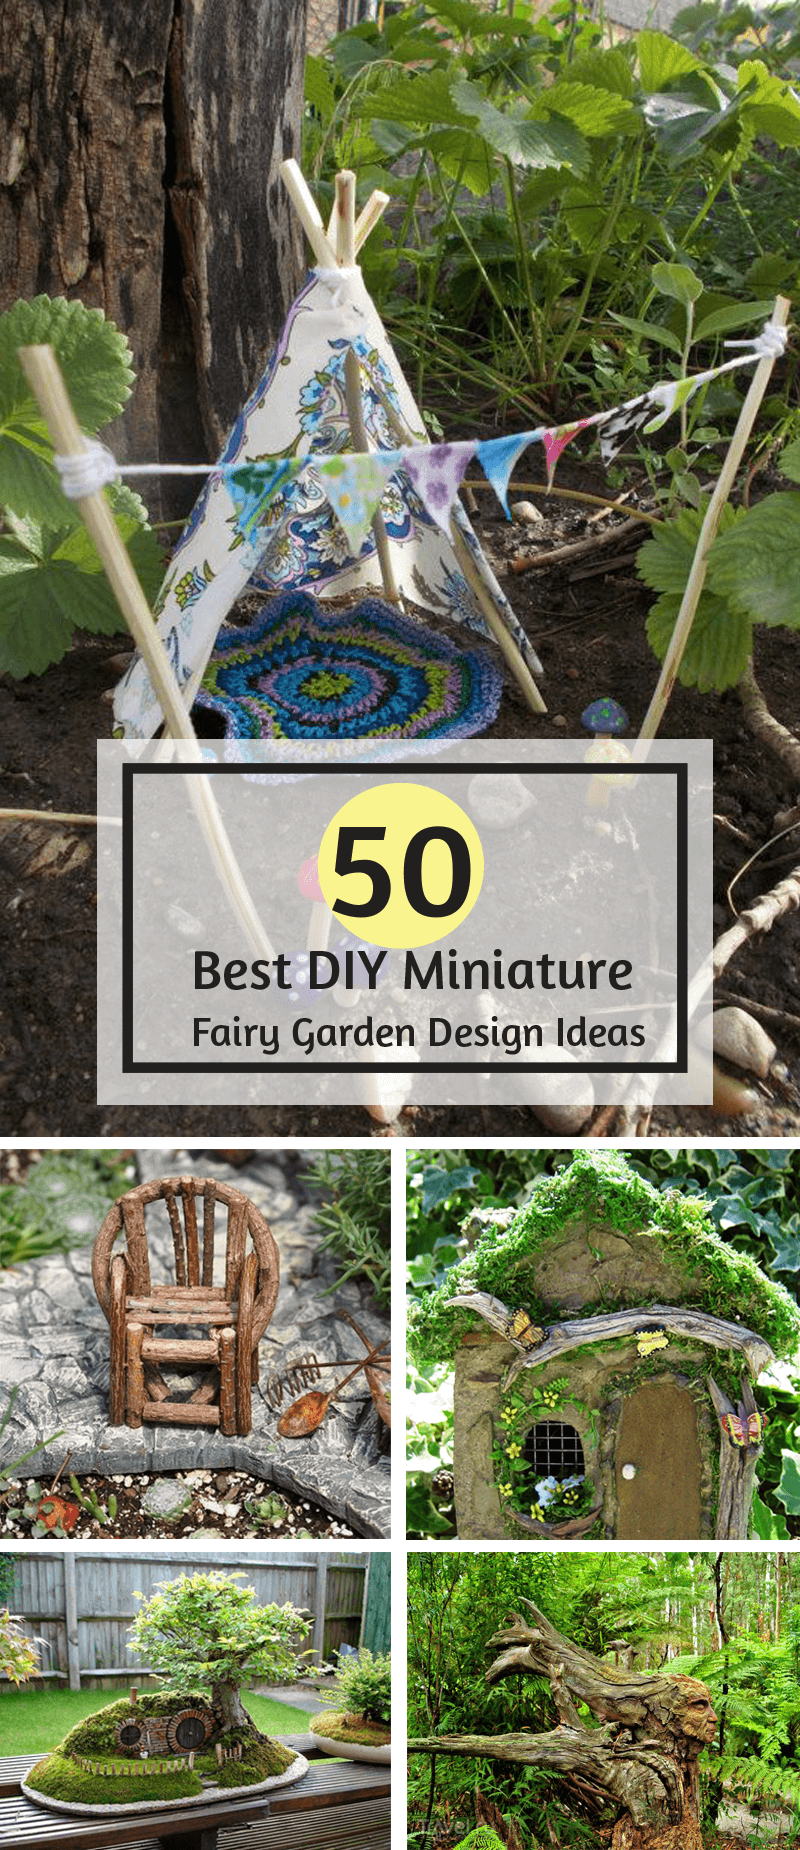 50 diy miniature fairy garden design ideas interiorsherpa for Design ideas for your garden